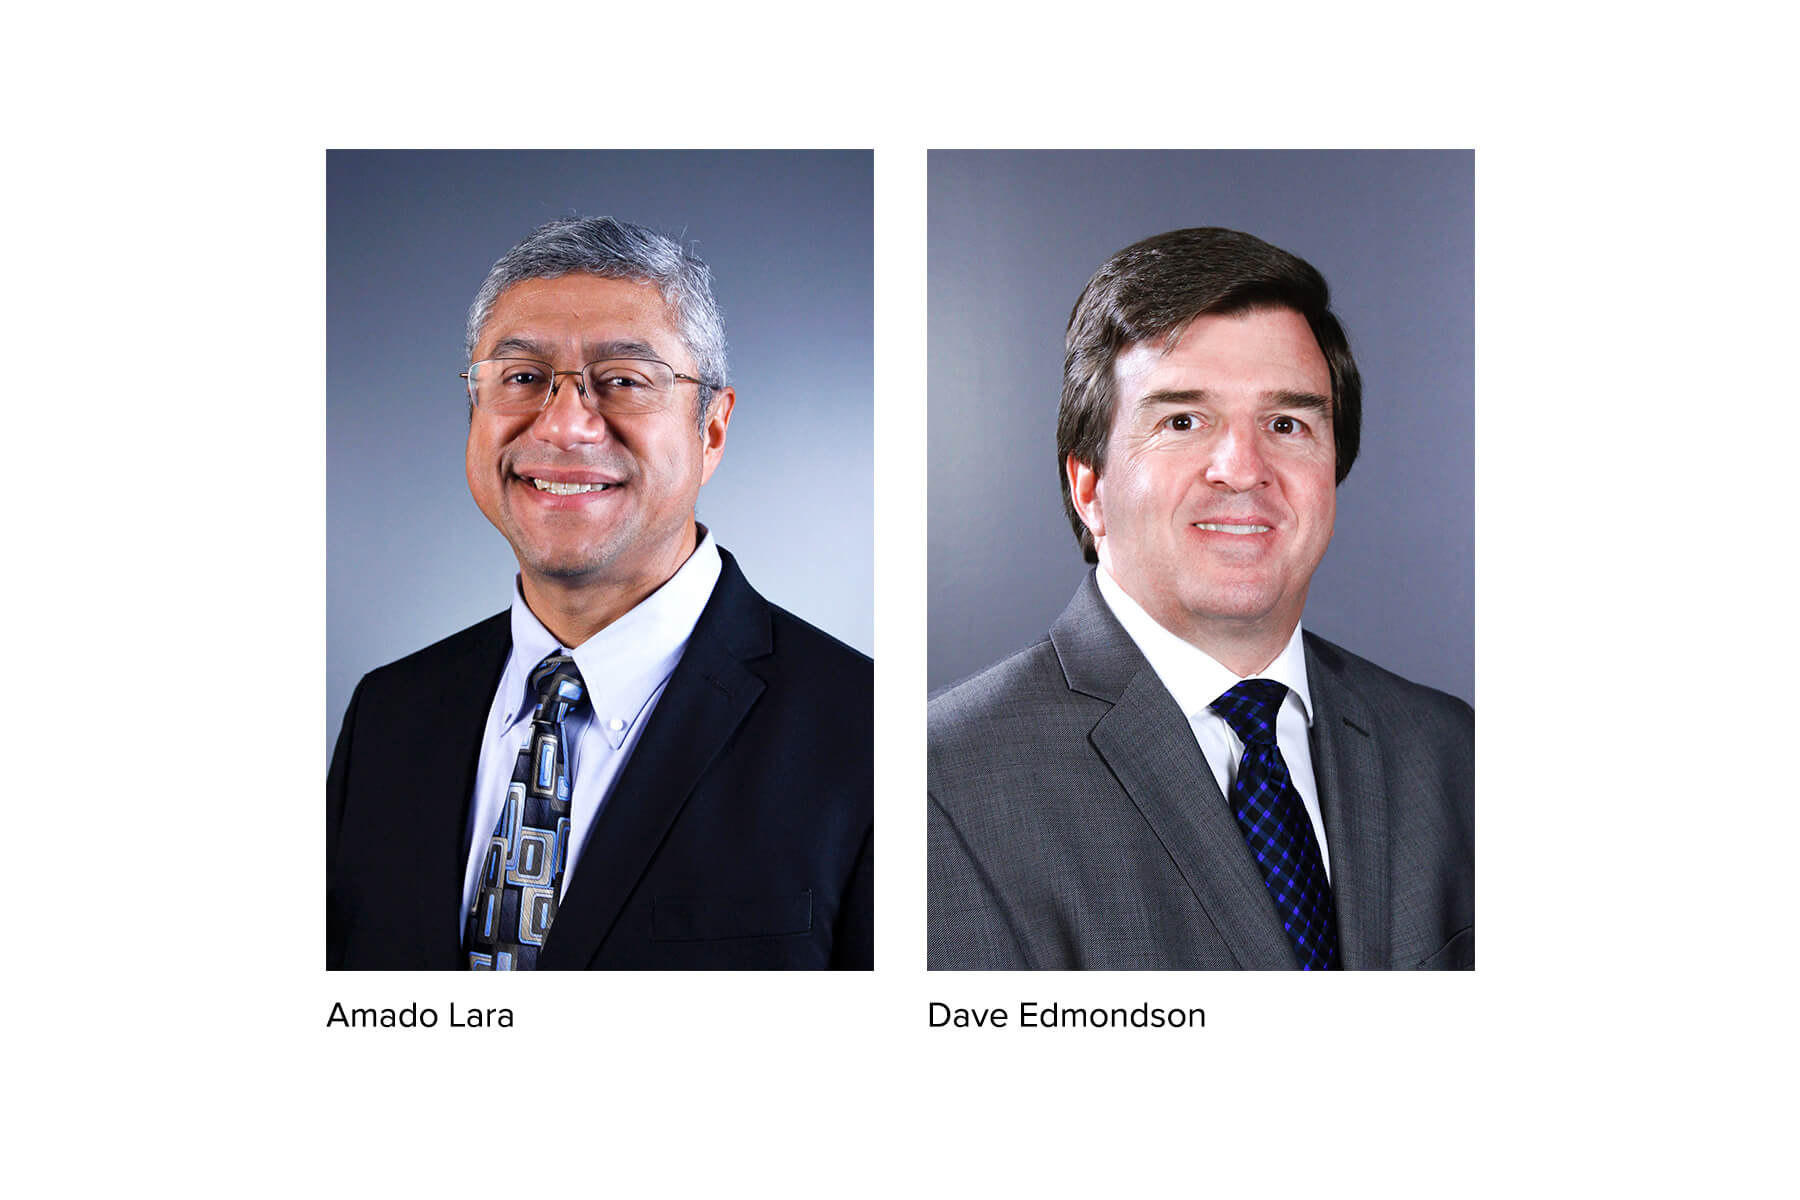 Recent personnel changes have strengthened Roland DGA Corporation's leadership team.